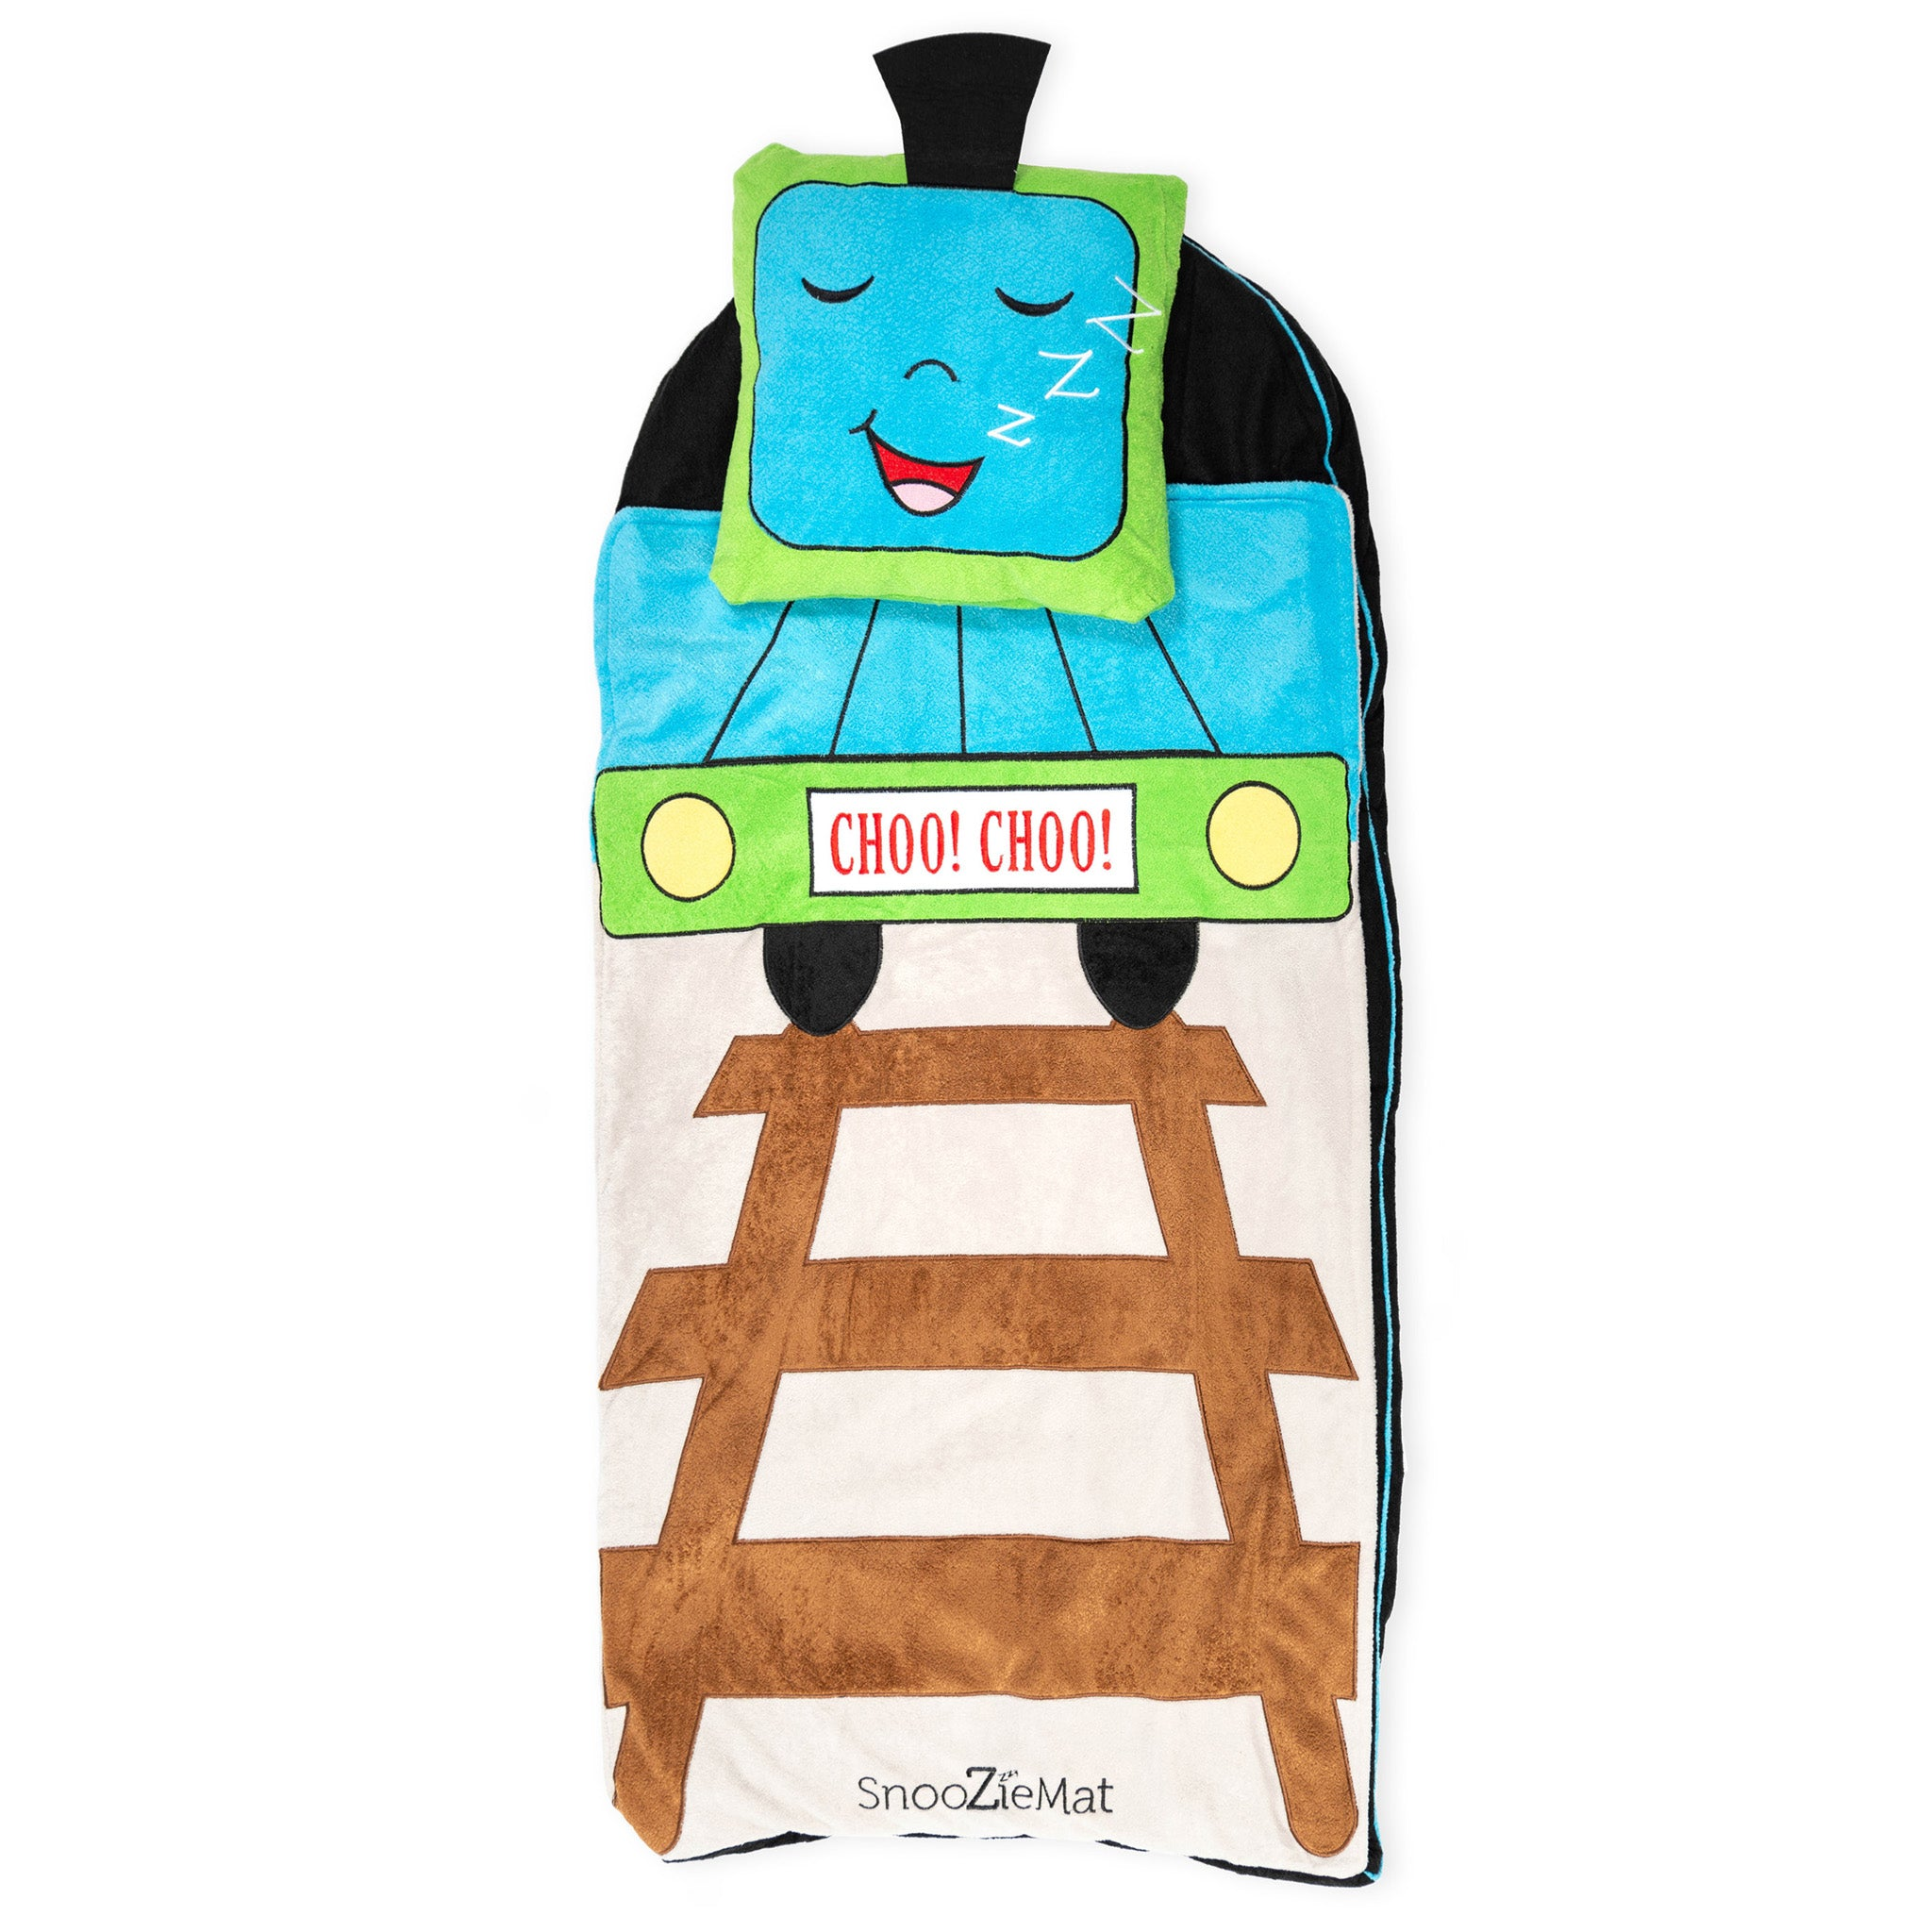 Choo Choo The Train SnooZieMat Sleeping Bag by Sleeping Baby Meet Choo Choo the Train and take him for your trip! The SnooZieMat is a clever nap time on-the-go solution. This easy-to-pack sleeping bag is ideal for school naps, sleepovers, and blanket forts. Once your child is done snoozing, roll it up and keep moving.   48 x24  mat rolls into a 12 x16  backpack(Bottom mat is roughly 1.5 inches thick) Fabric: 100% poly Machine washable  The SnooZieMat is machine washable, for best results remove the pillow insert before washing.  - Choo Choo The Train SnooZieMat Sleeping Bag by Sleeping Baby